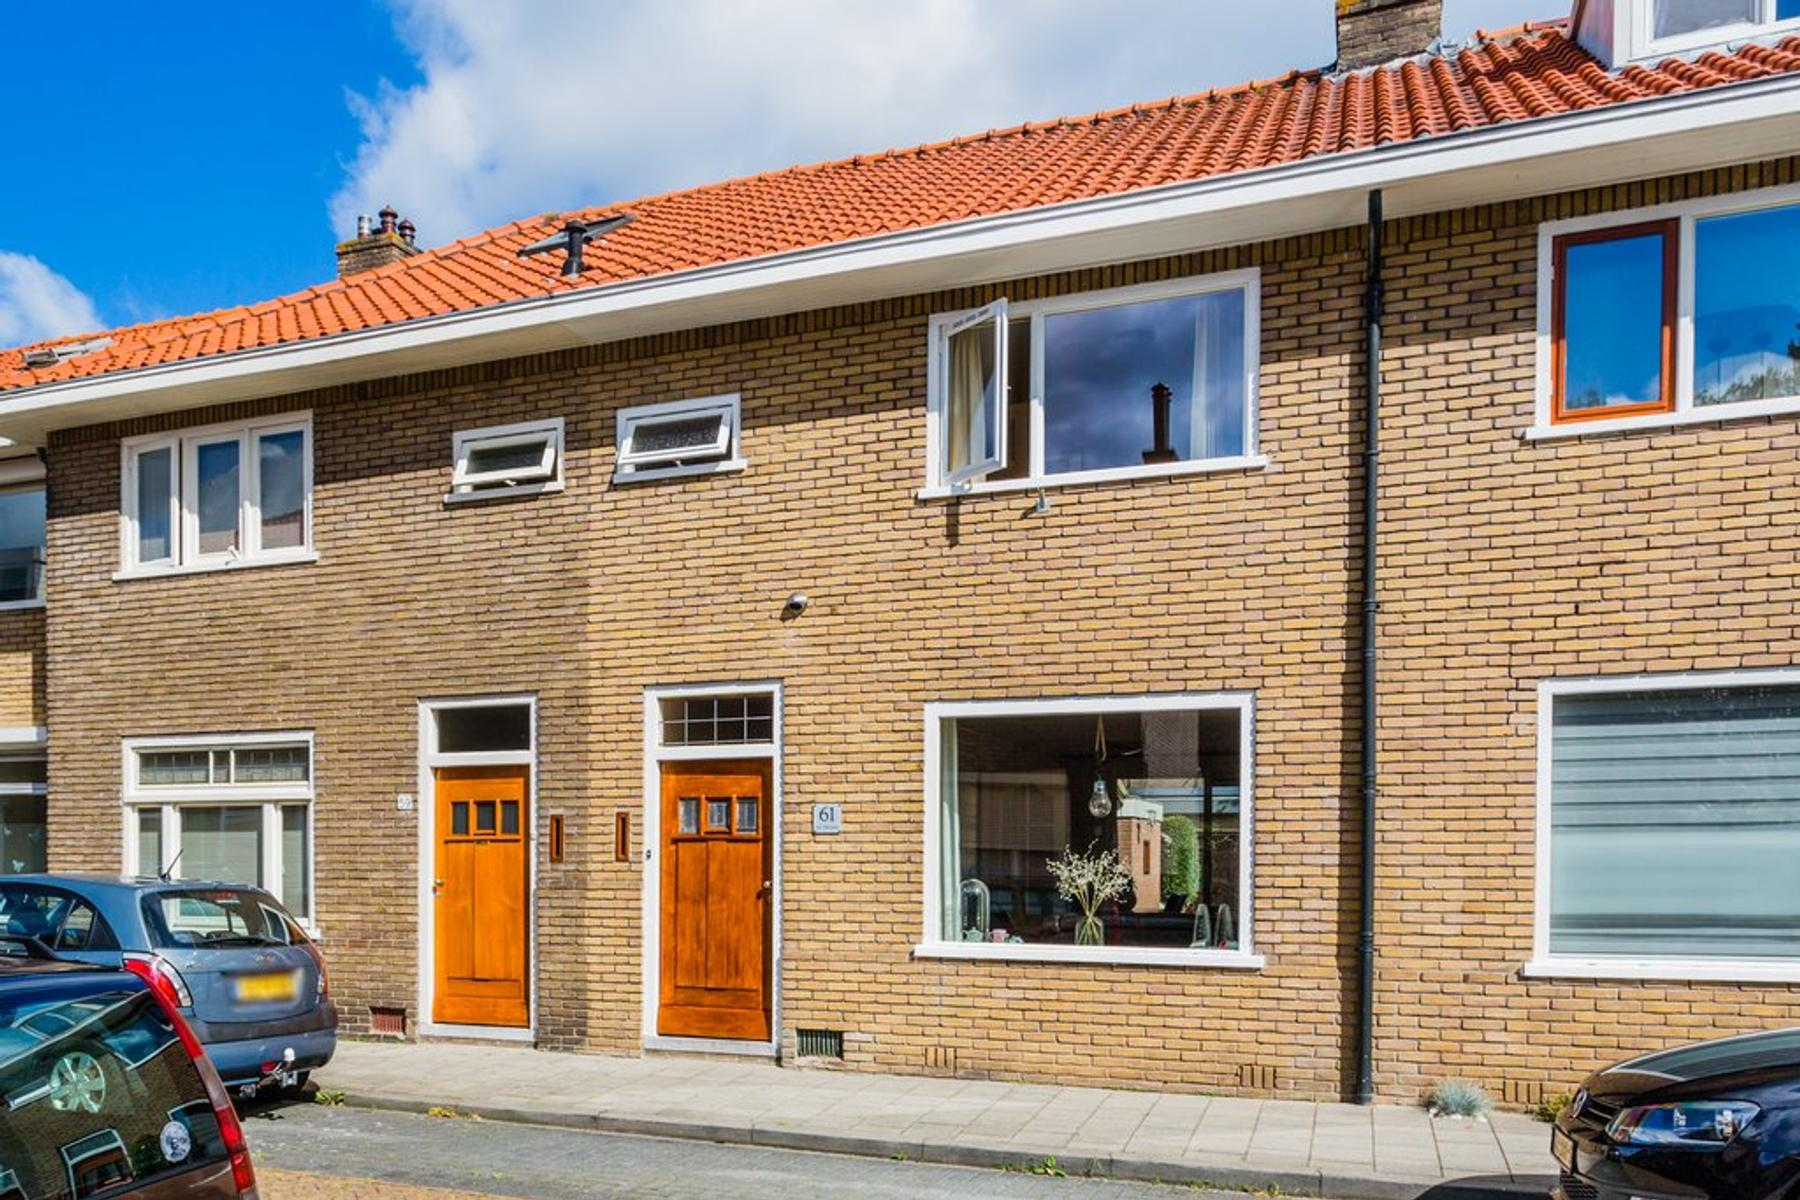 Anemoonstraat 61 in Zwolle 8012 XV